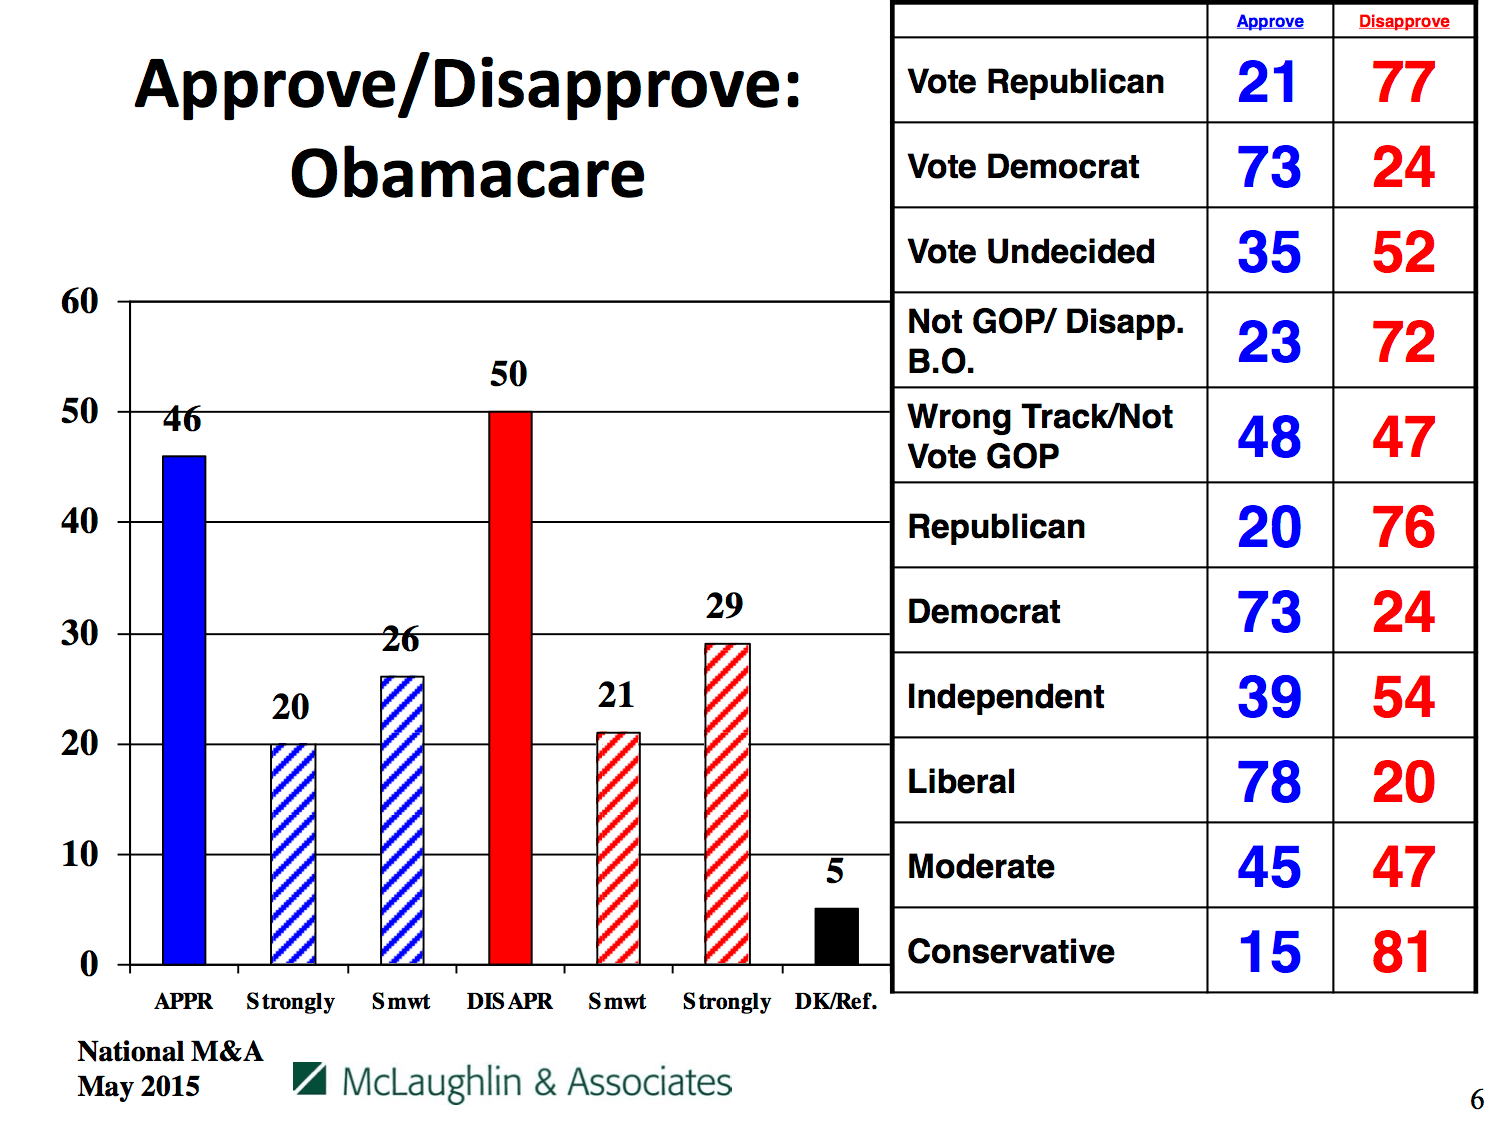 Approval vs. disapproval of Obamacare, by party and affiliation